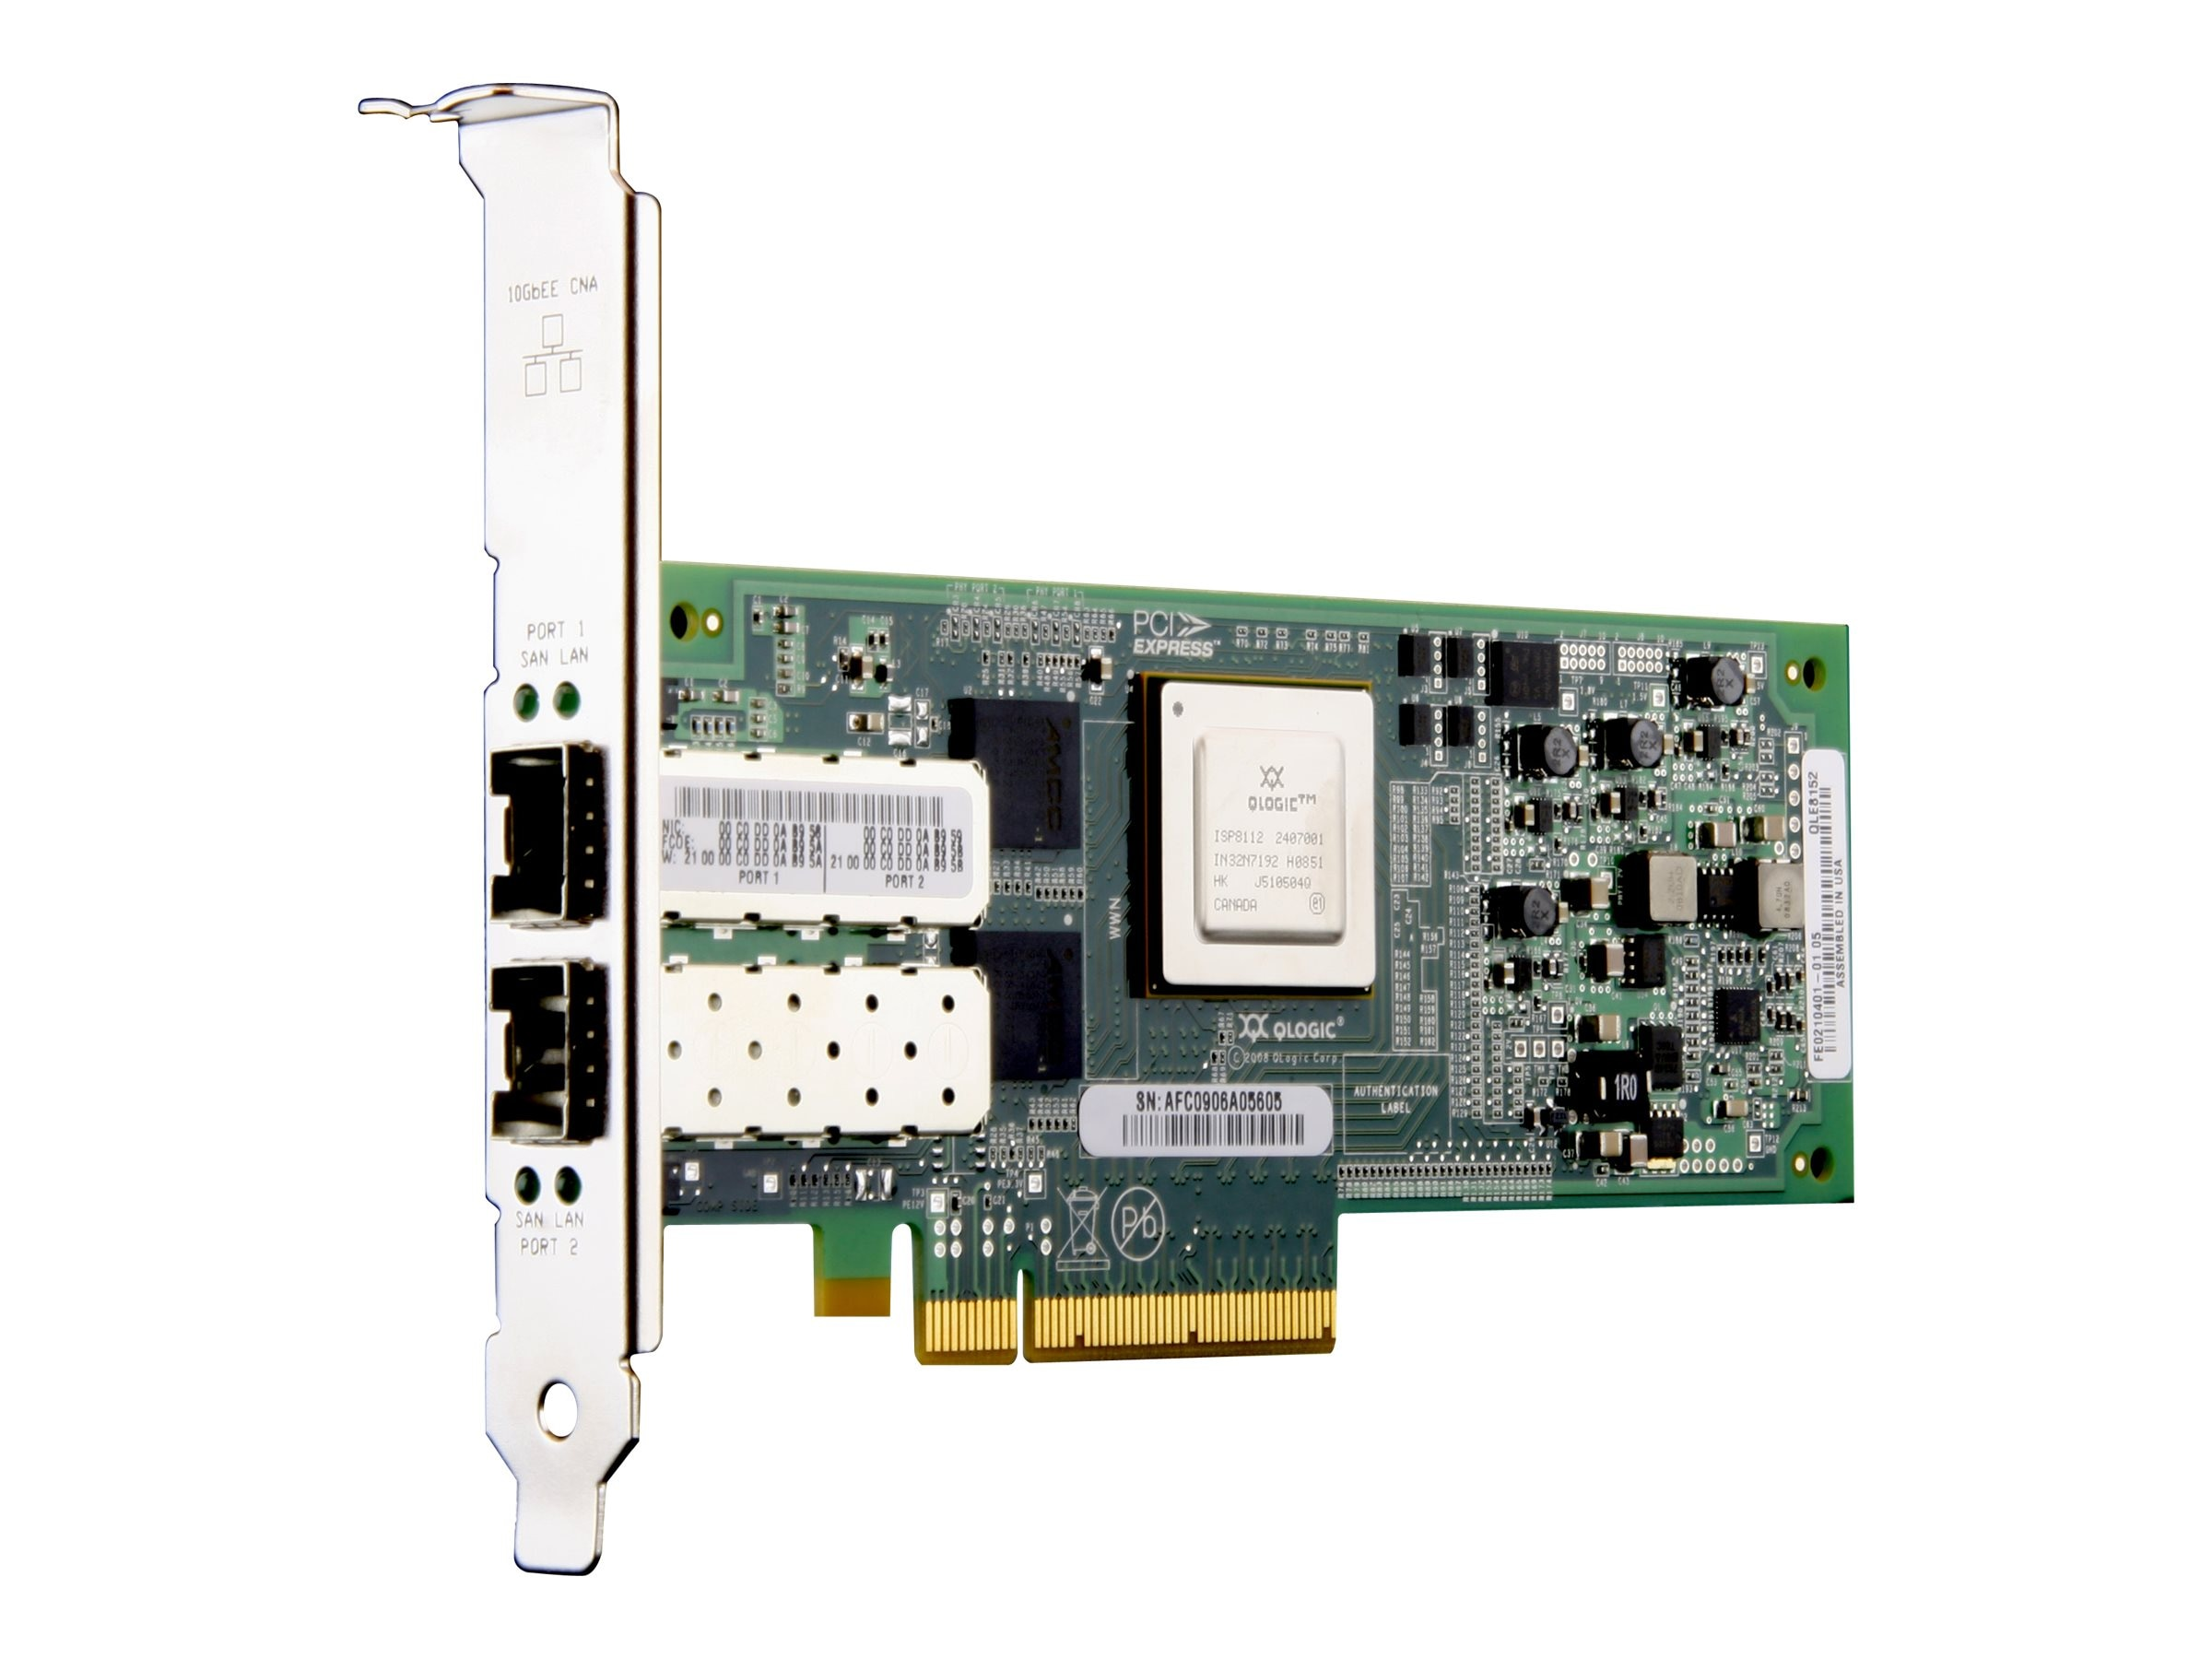 Cisco QLE 8152 Converged Network for Qlogic, N2XX-AQPCI01, 10909795, Network Adapters & NICs